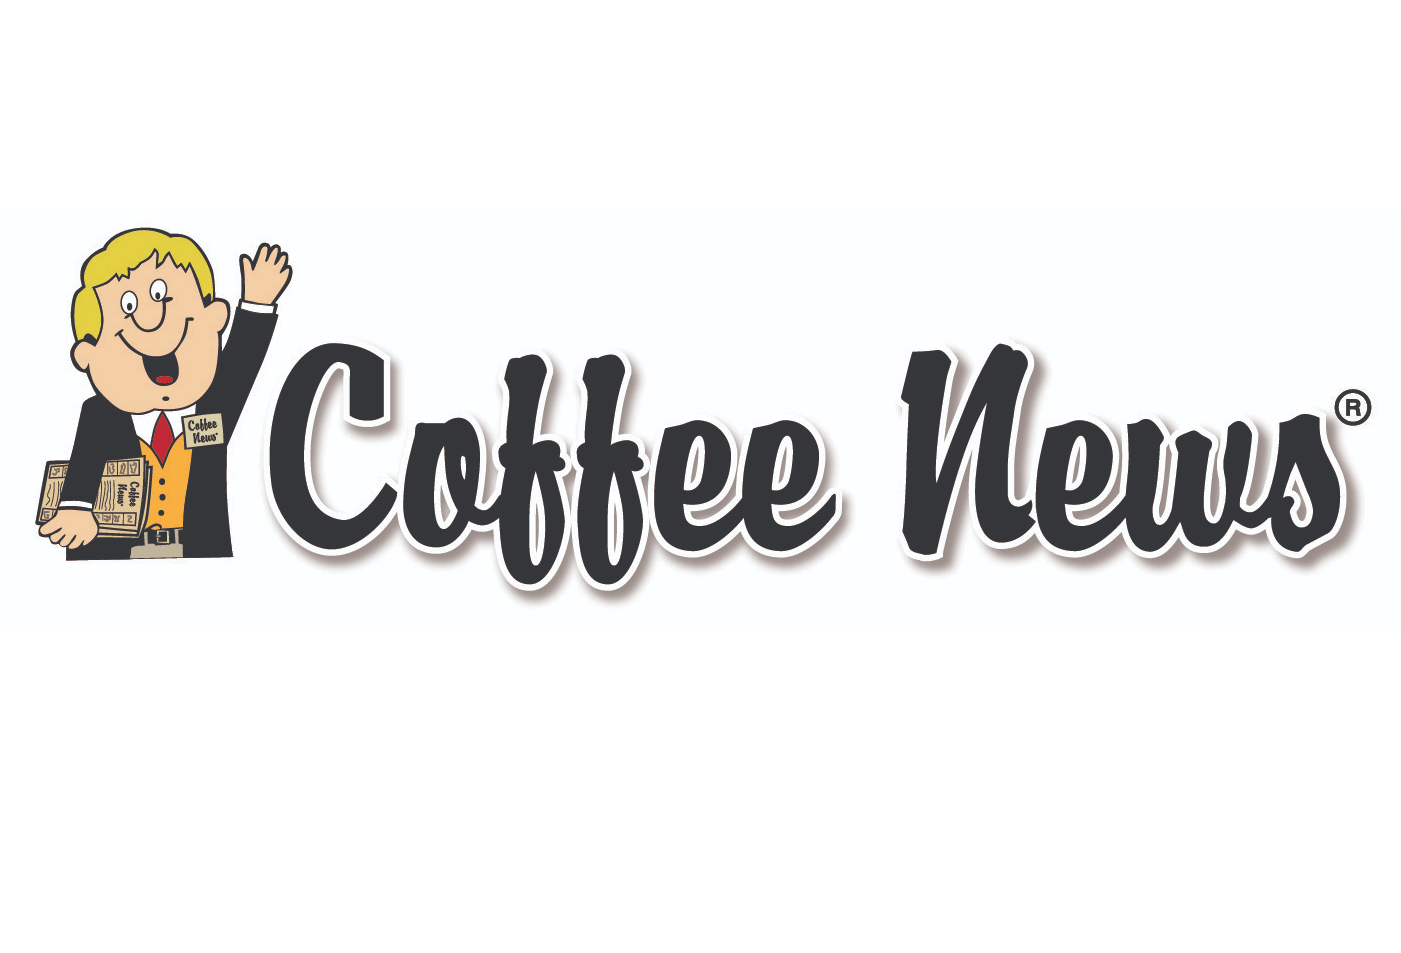 Coffee News®